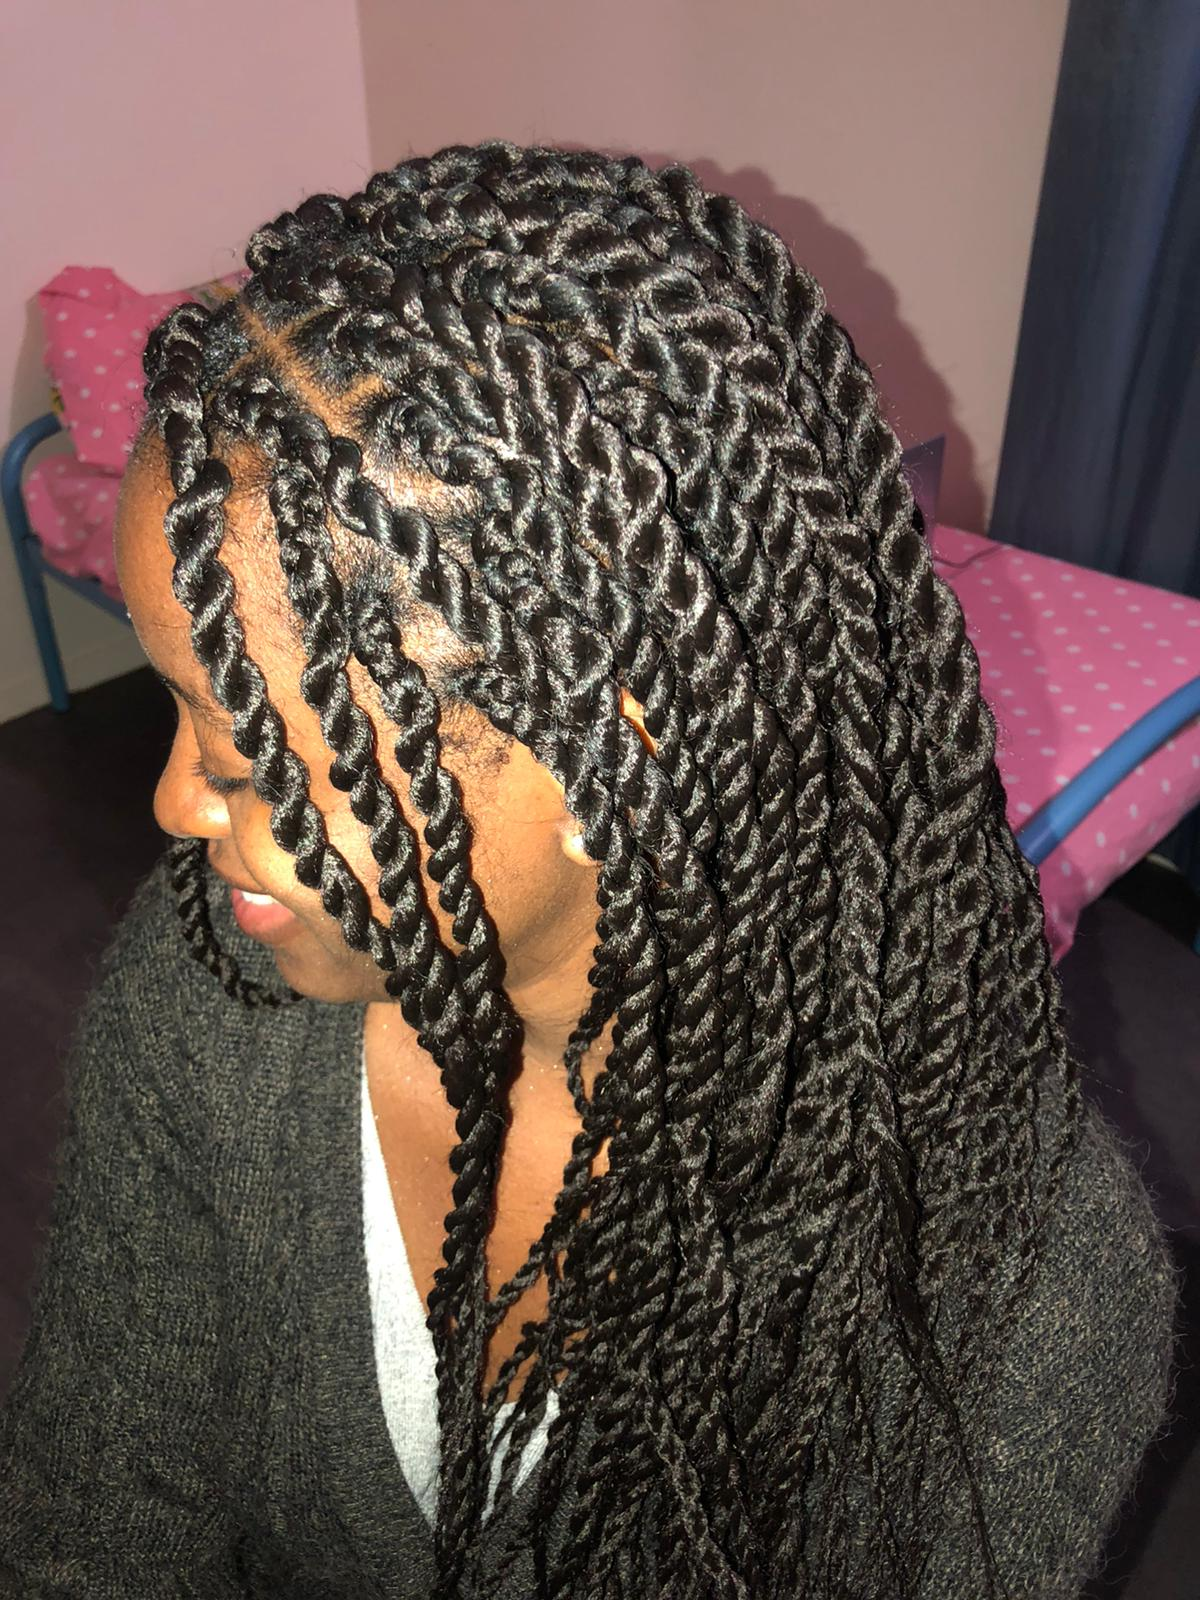 salon de coiffure afro tresse tresses box braids crochet braids vanilles tissages paris 75 77 78 91 92 93 94 95 FNKEUDGJ